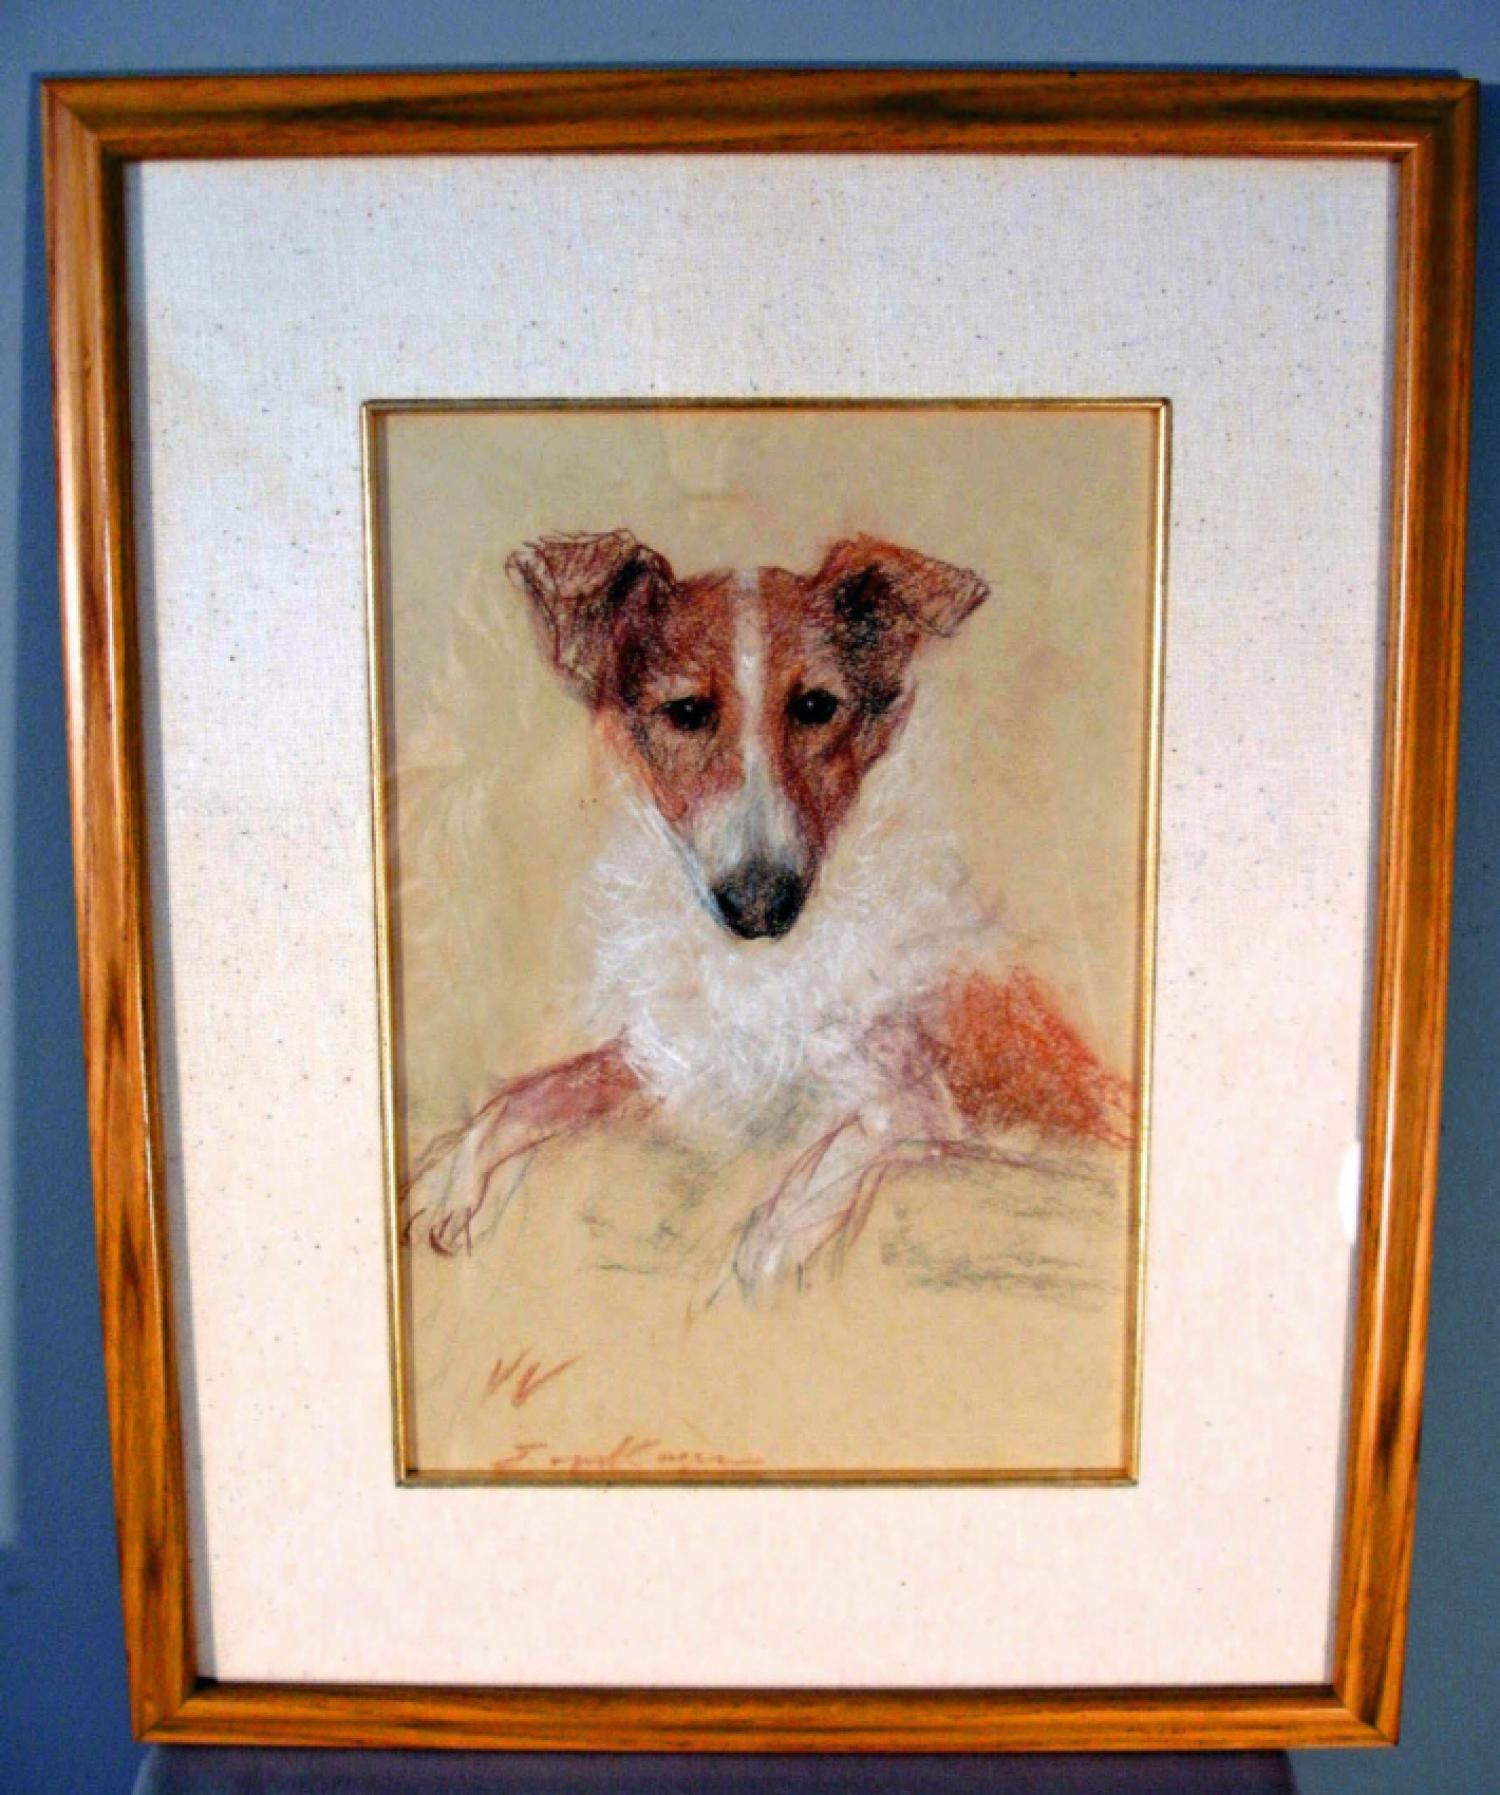 Miniature collie pastel portrait by Erica Von Kager